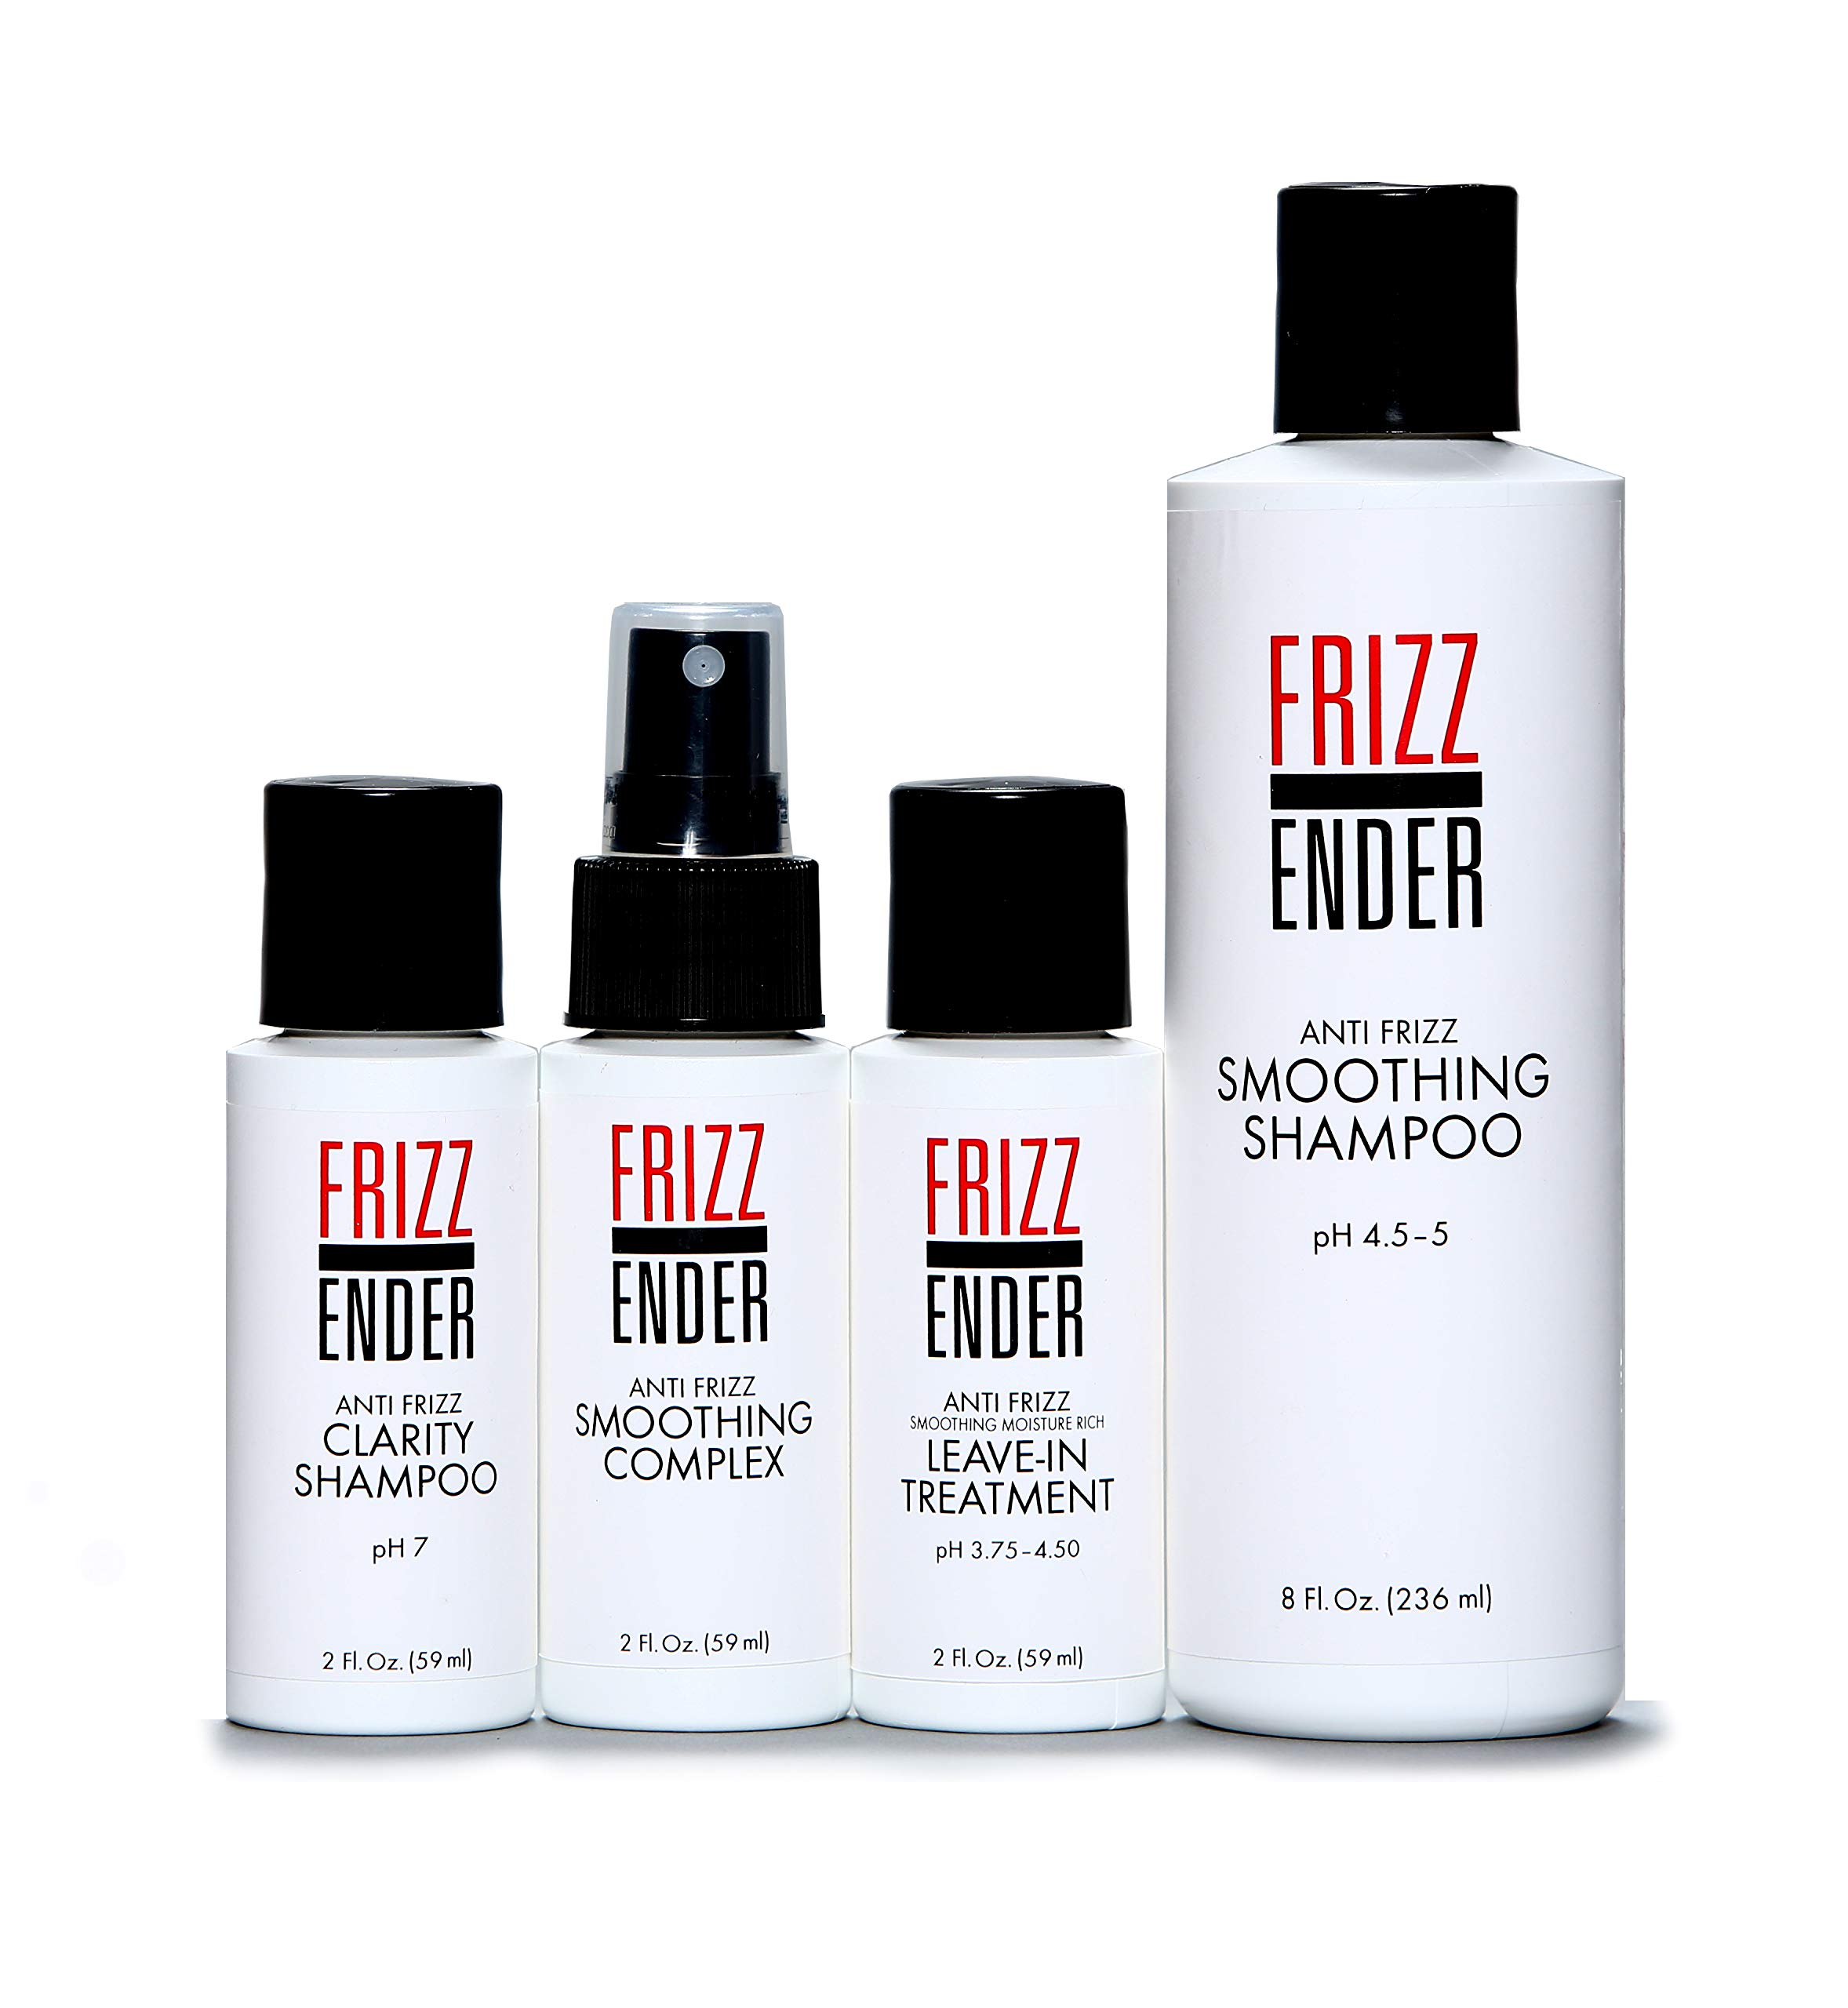 Frizz Ender - Anti Frizz Salon Quality Hair Treatment Kit for Professional Results - Control Frizzy Hair for Up to 4 Weeks! by FITMAKER